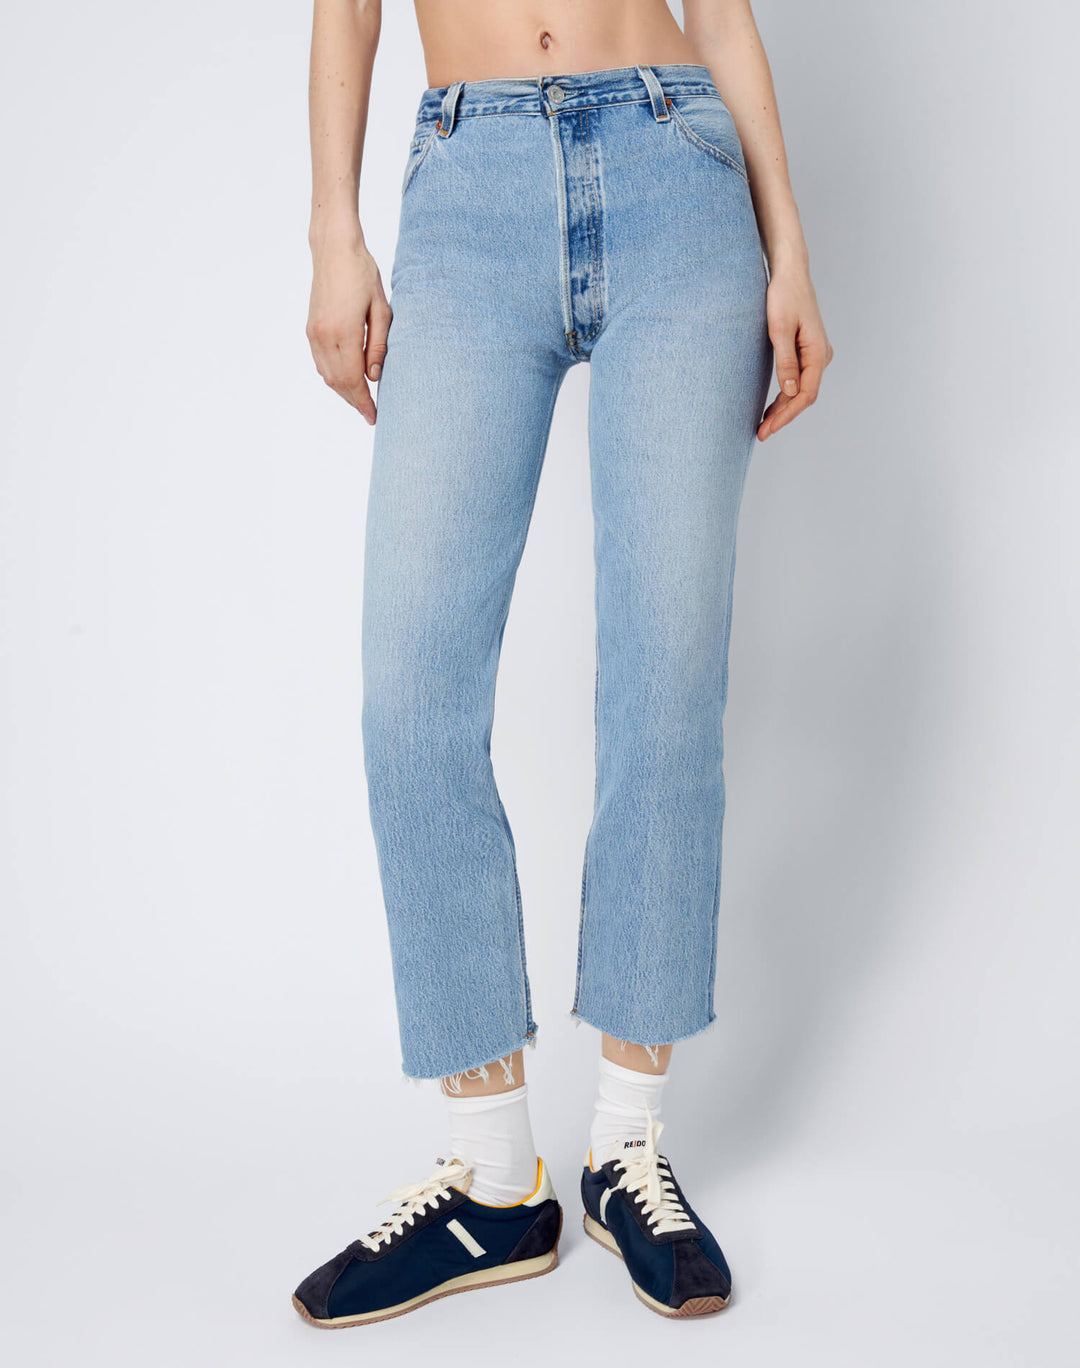 70s Super Crop Boot by Re Done, available on shopredone.com for $340 Kaia Gerber Pants SIMILAR PRODUCT